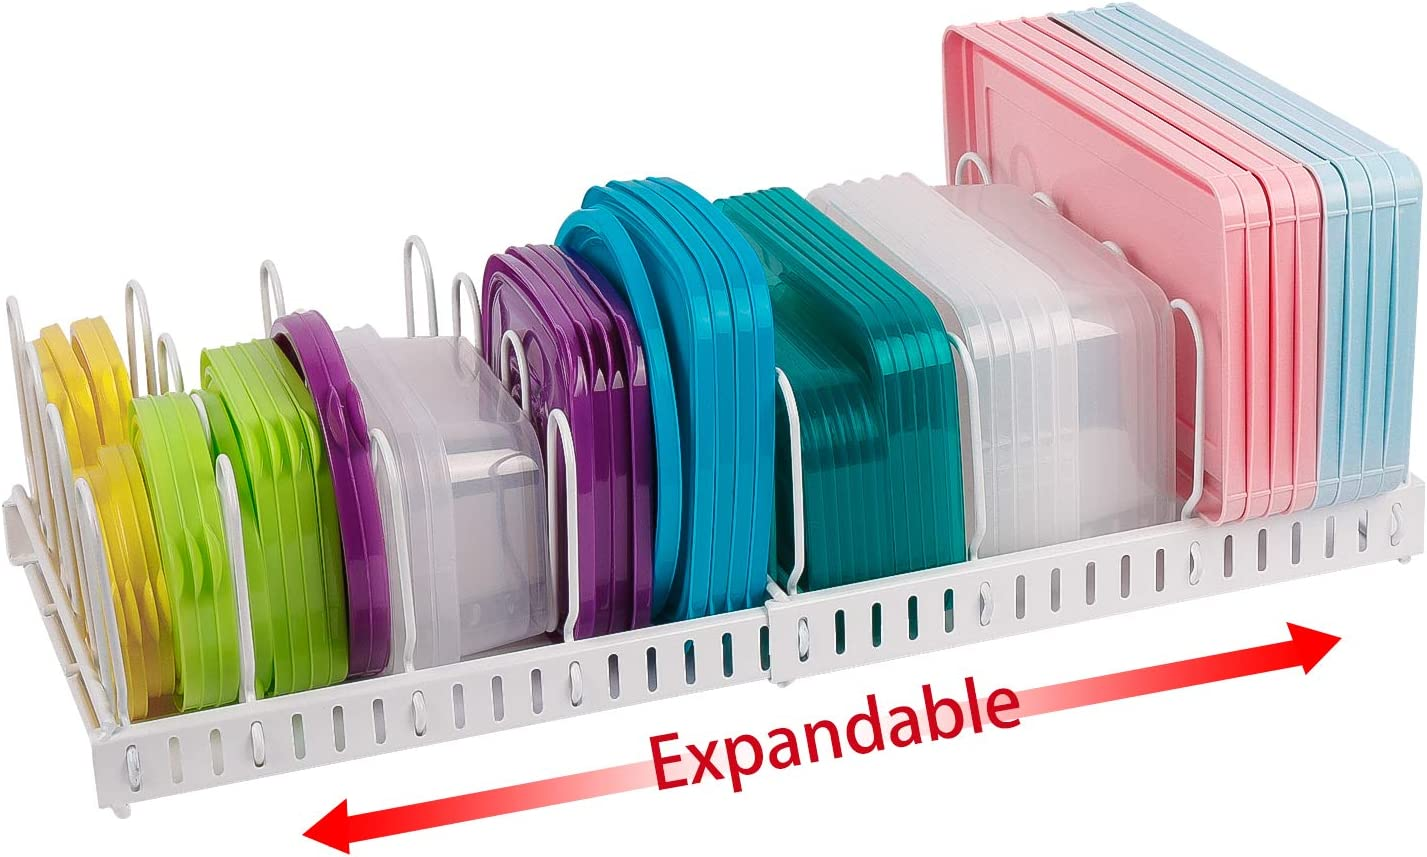 Expandable Food Container Lid Organizer,Large Capacity Adjustable 10 Dividers Detachable Lid Organizer Rack for Cabinets, Cupboards, Pantry Shelves, Drawers to Keep Kitchen Tidy,White(Patent Pending)